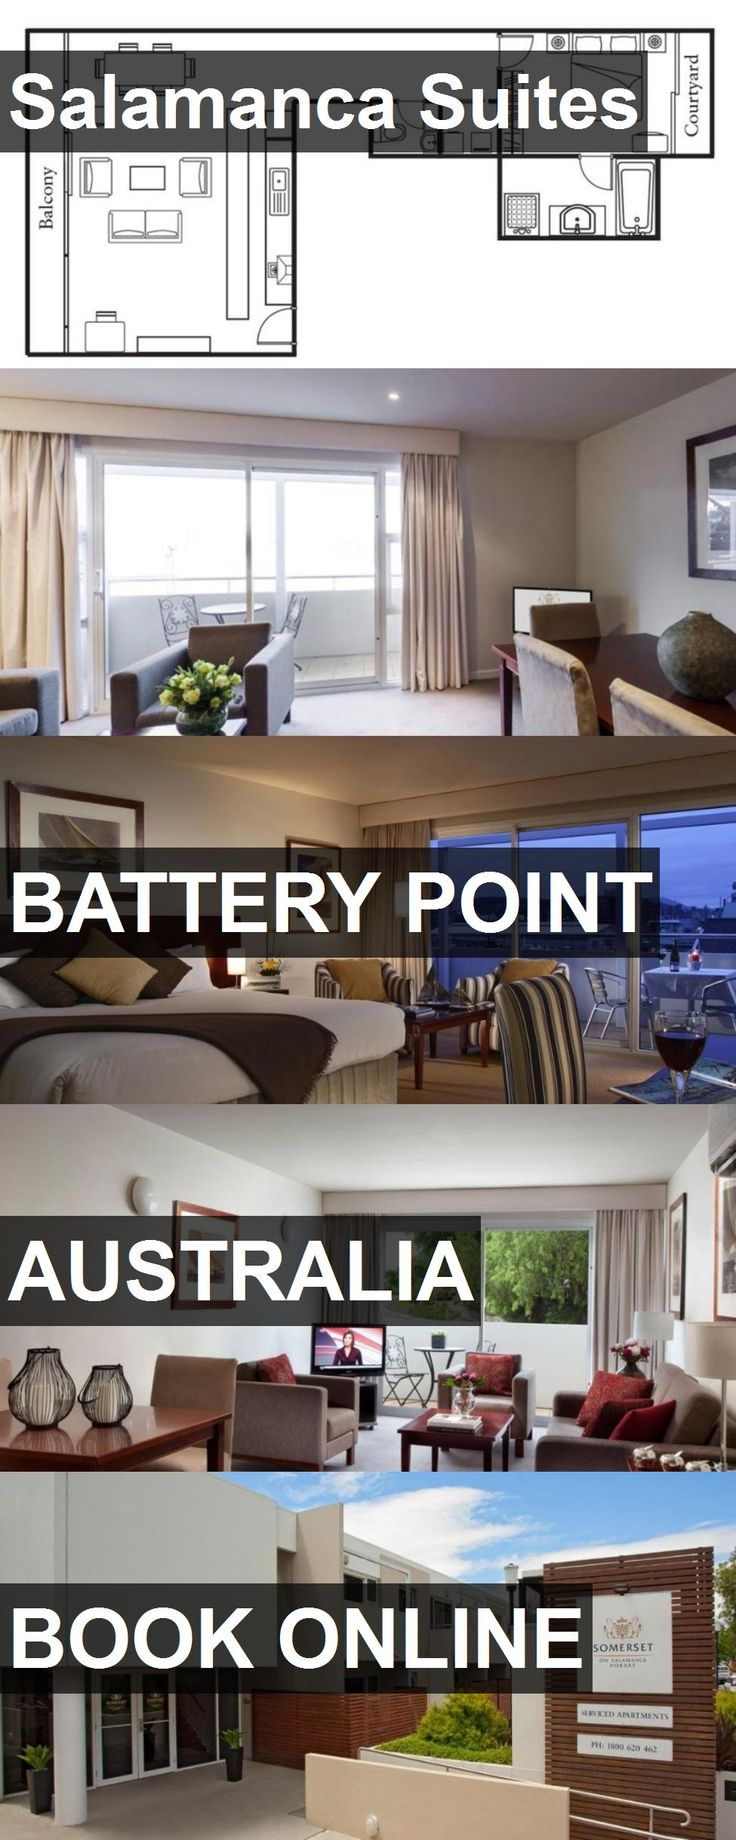 Hotel Salamanca Suites in Battery Point, Australia. For more information, photos, reviews and best prices please follow the link. #Australia #BatteryPoint #travel #vacation #hotel